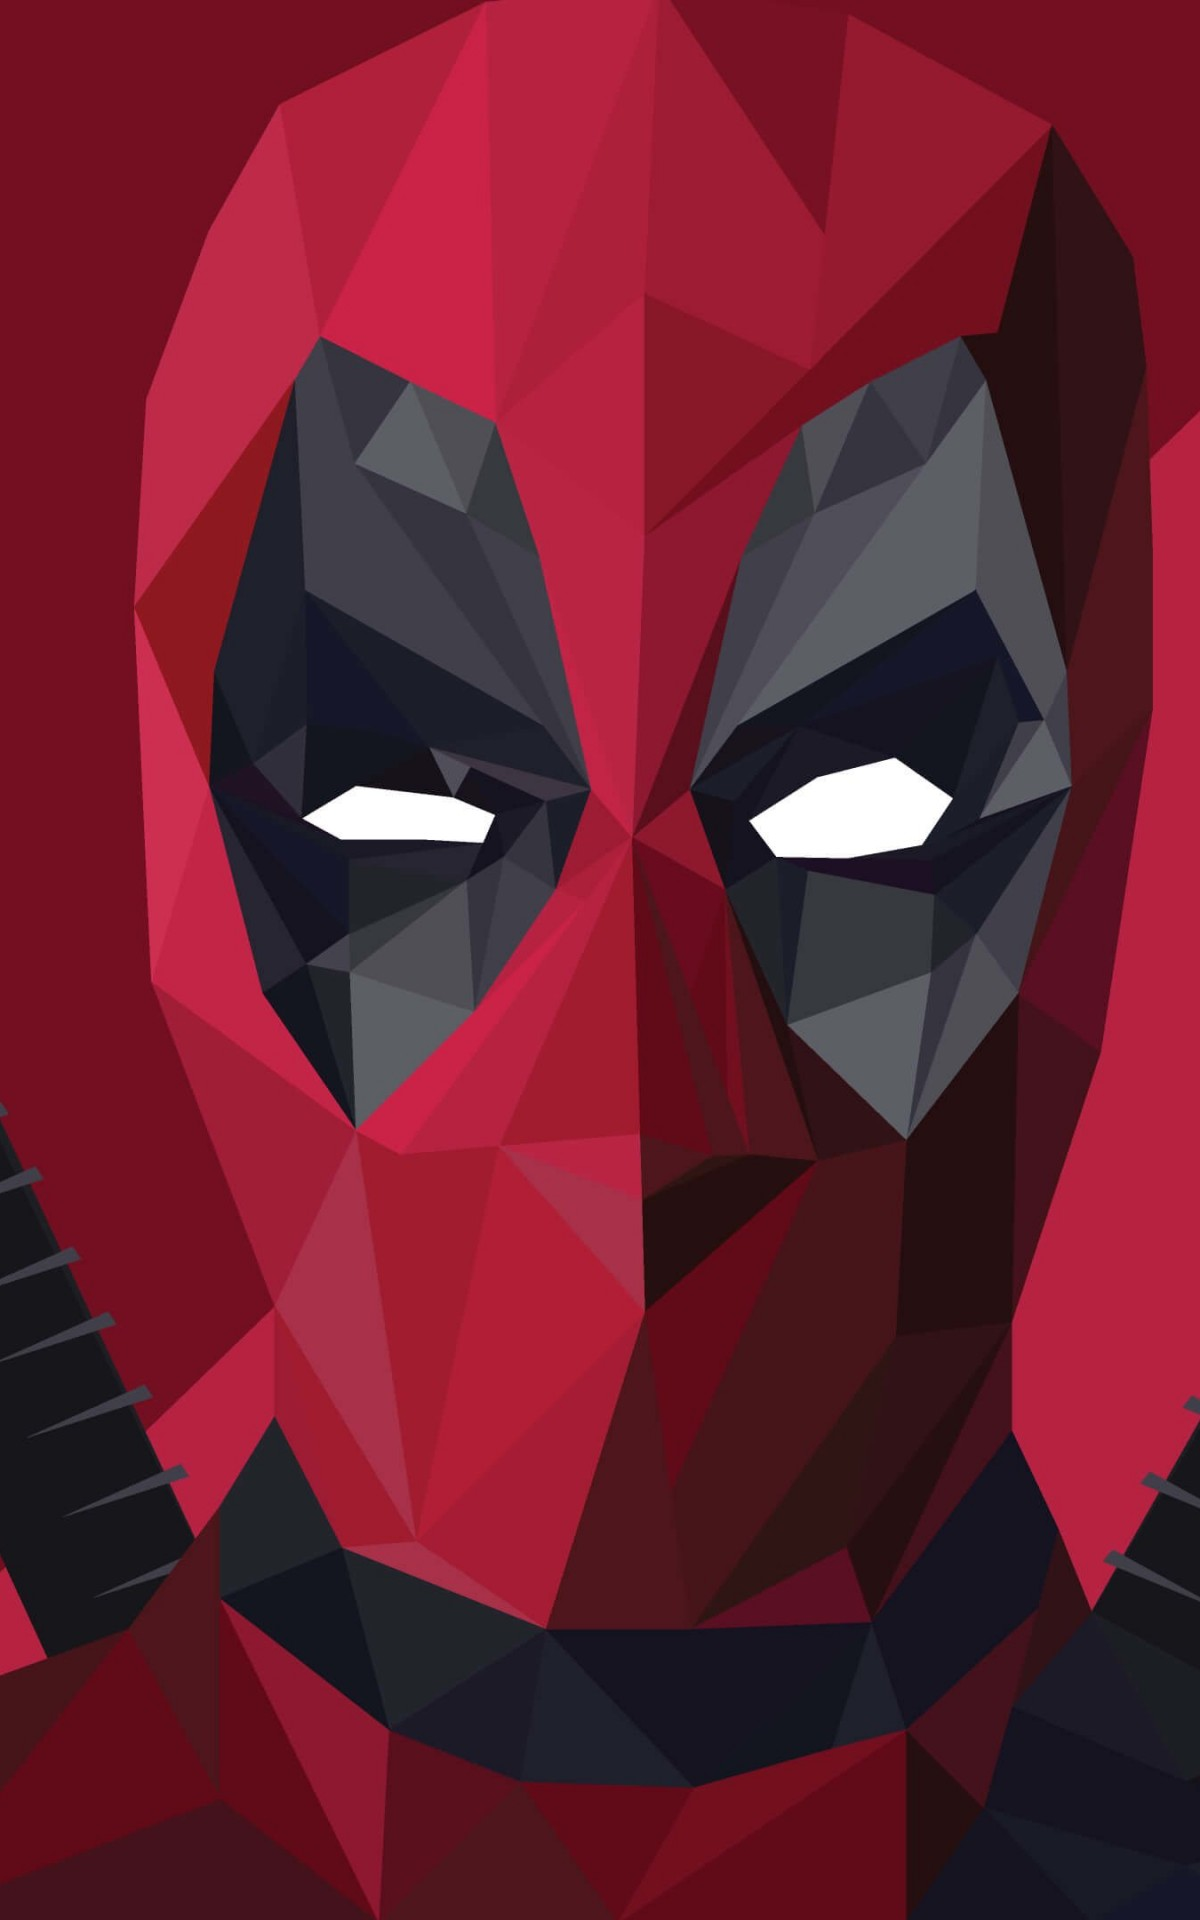 Low Poly Deadpool Wallpaper for Amazon Kindle Fire HDX